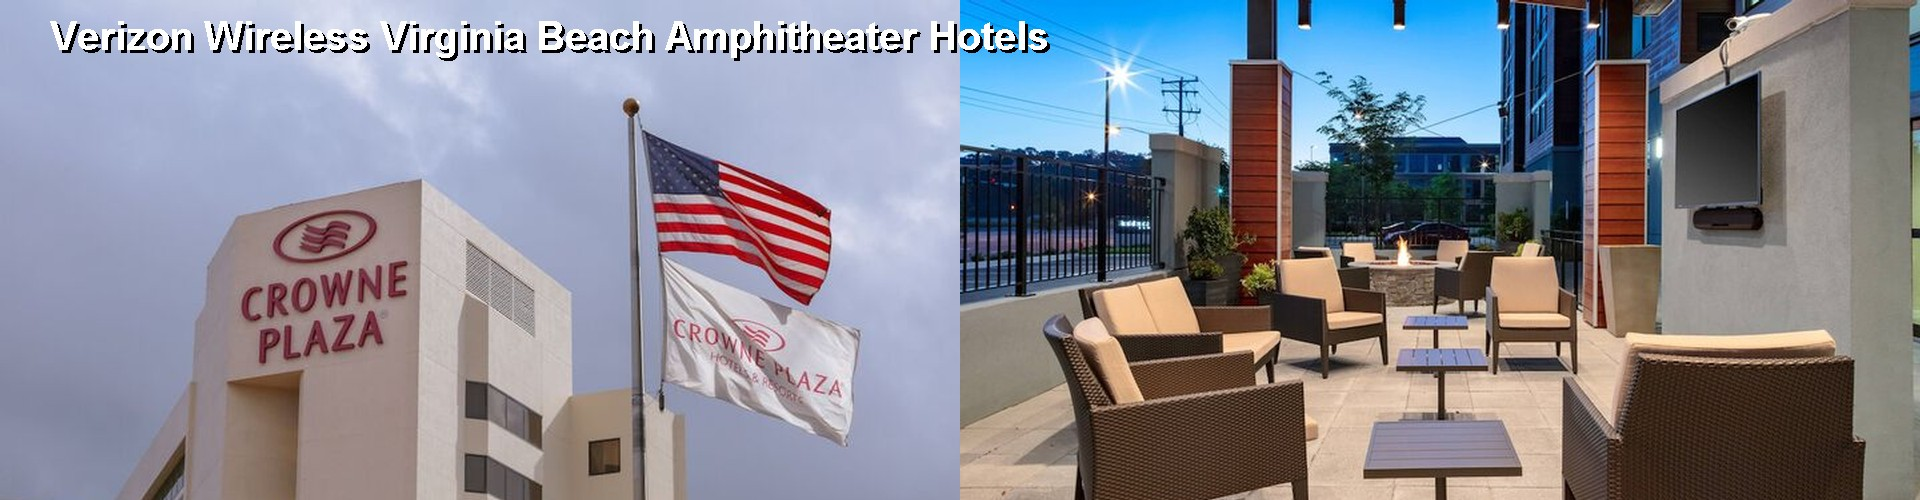 5 Best Hotels near Verizon Wireless Virginia Beach Amphitheater